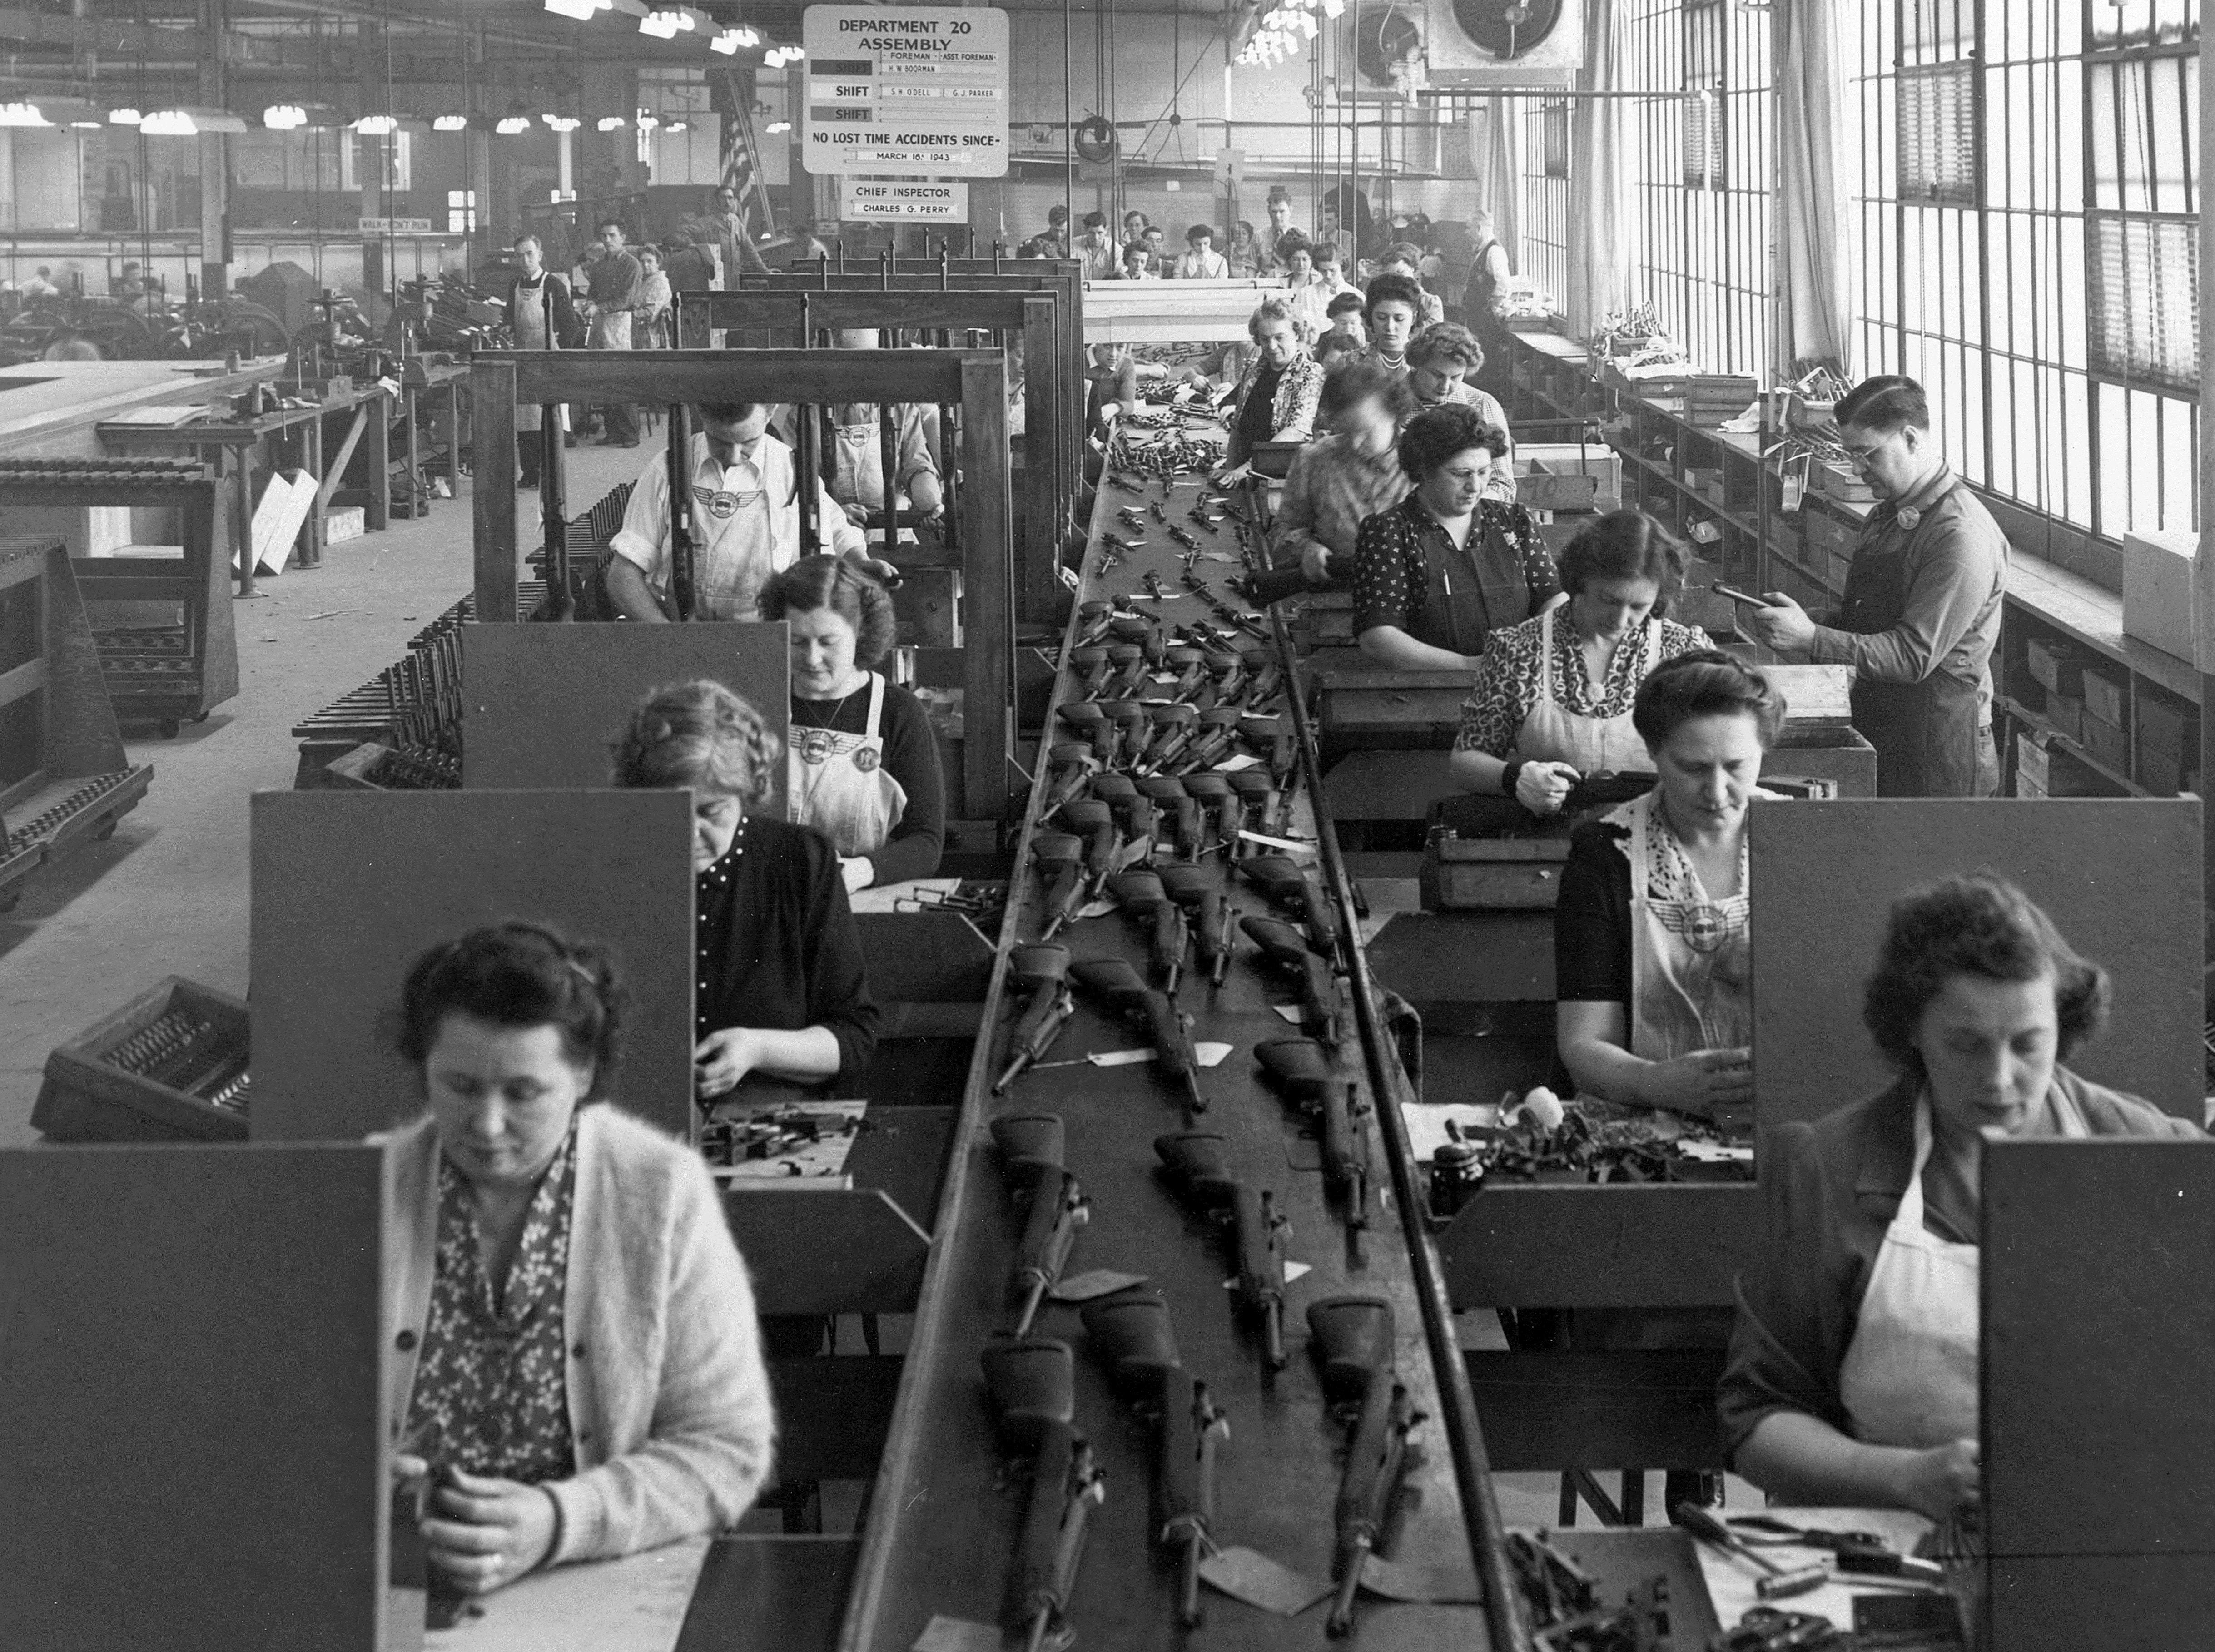 The final production line at National Postal Meter in Rochester during World War II. Carbines move along a conveyor belt with workers, nearly all women, on either side.